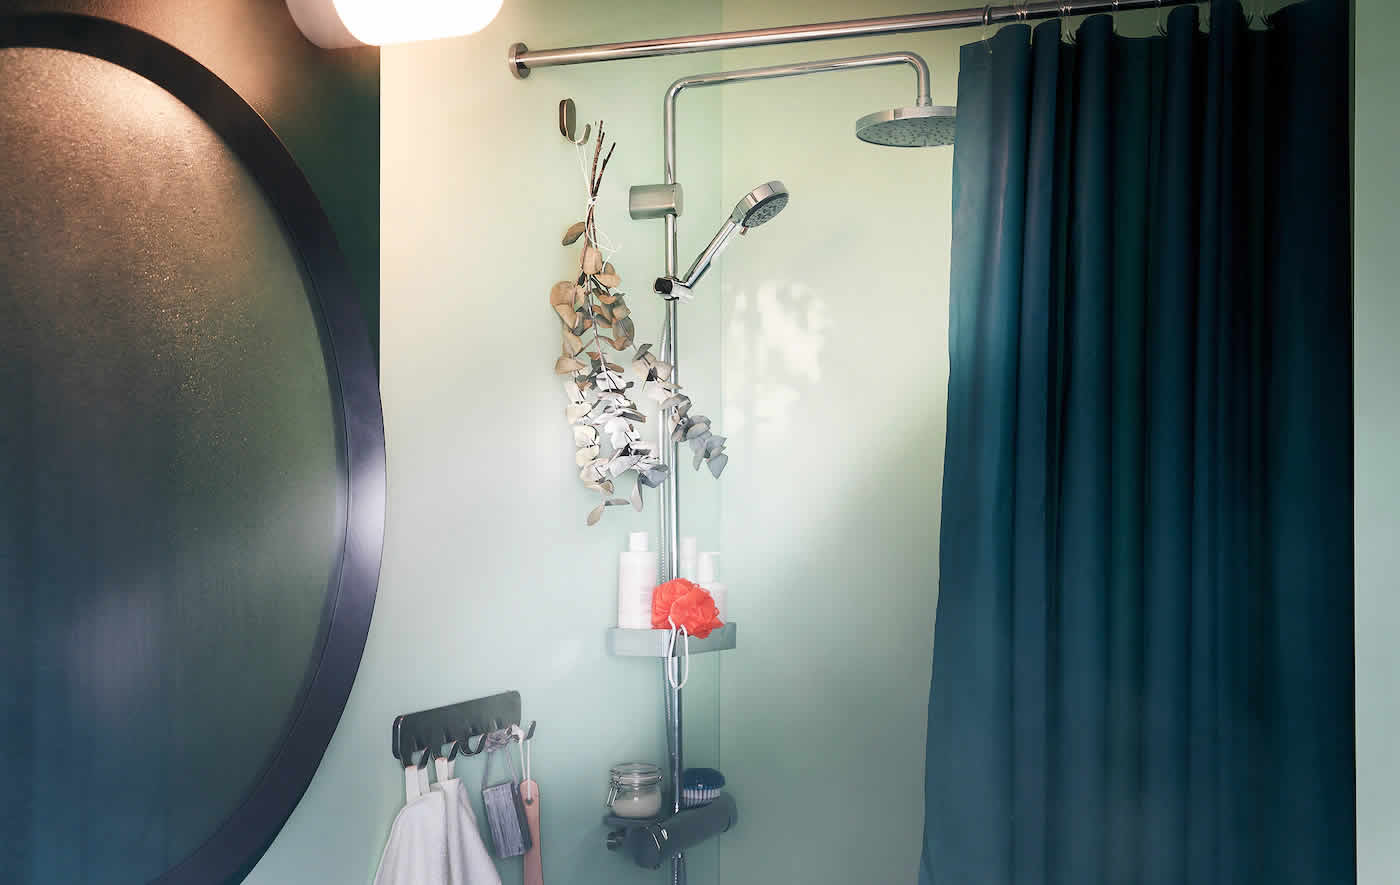 IKEA Ideas - Your bathroom shower – a stand-up spa